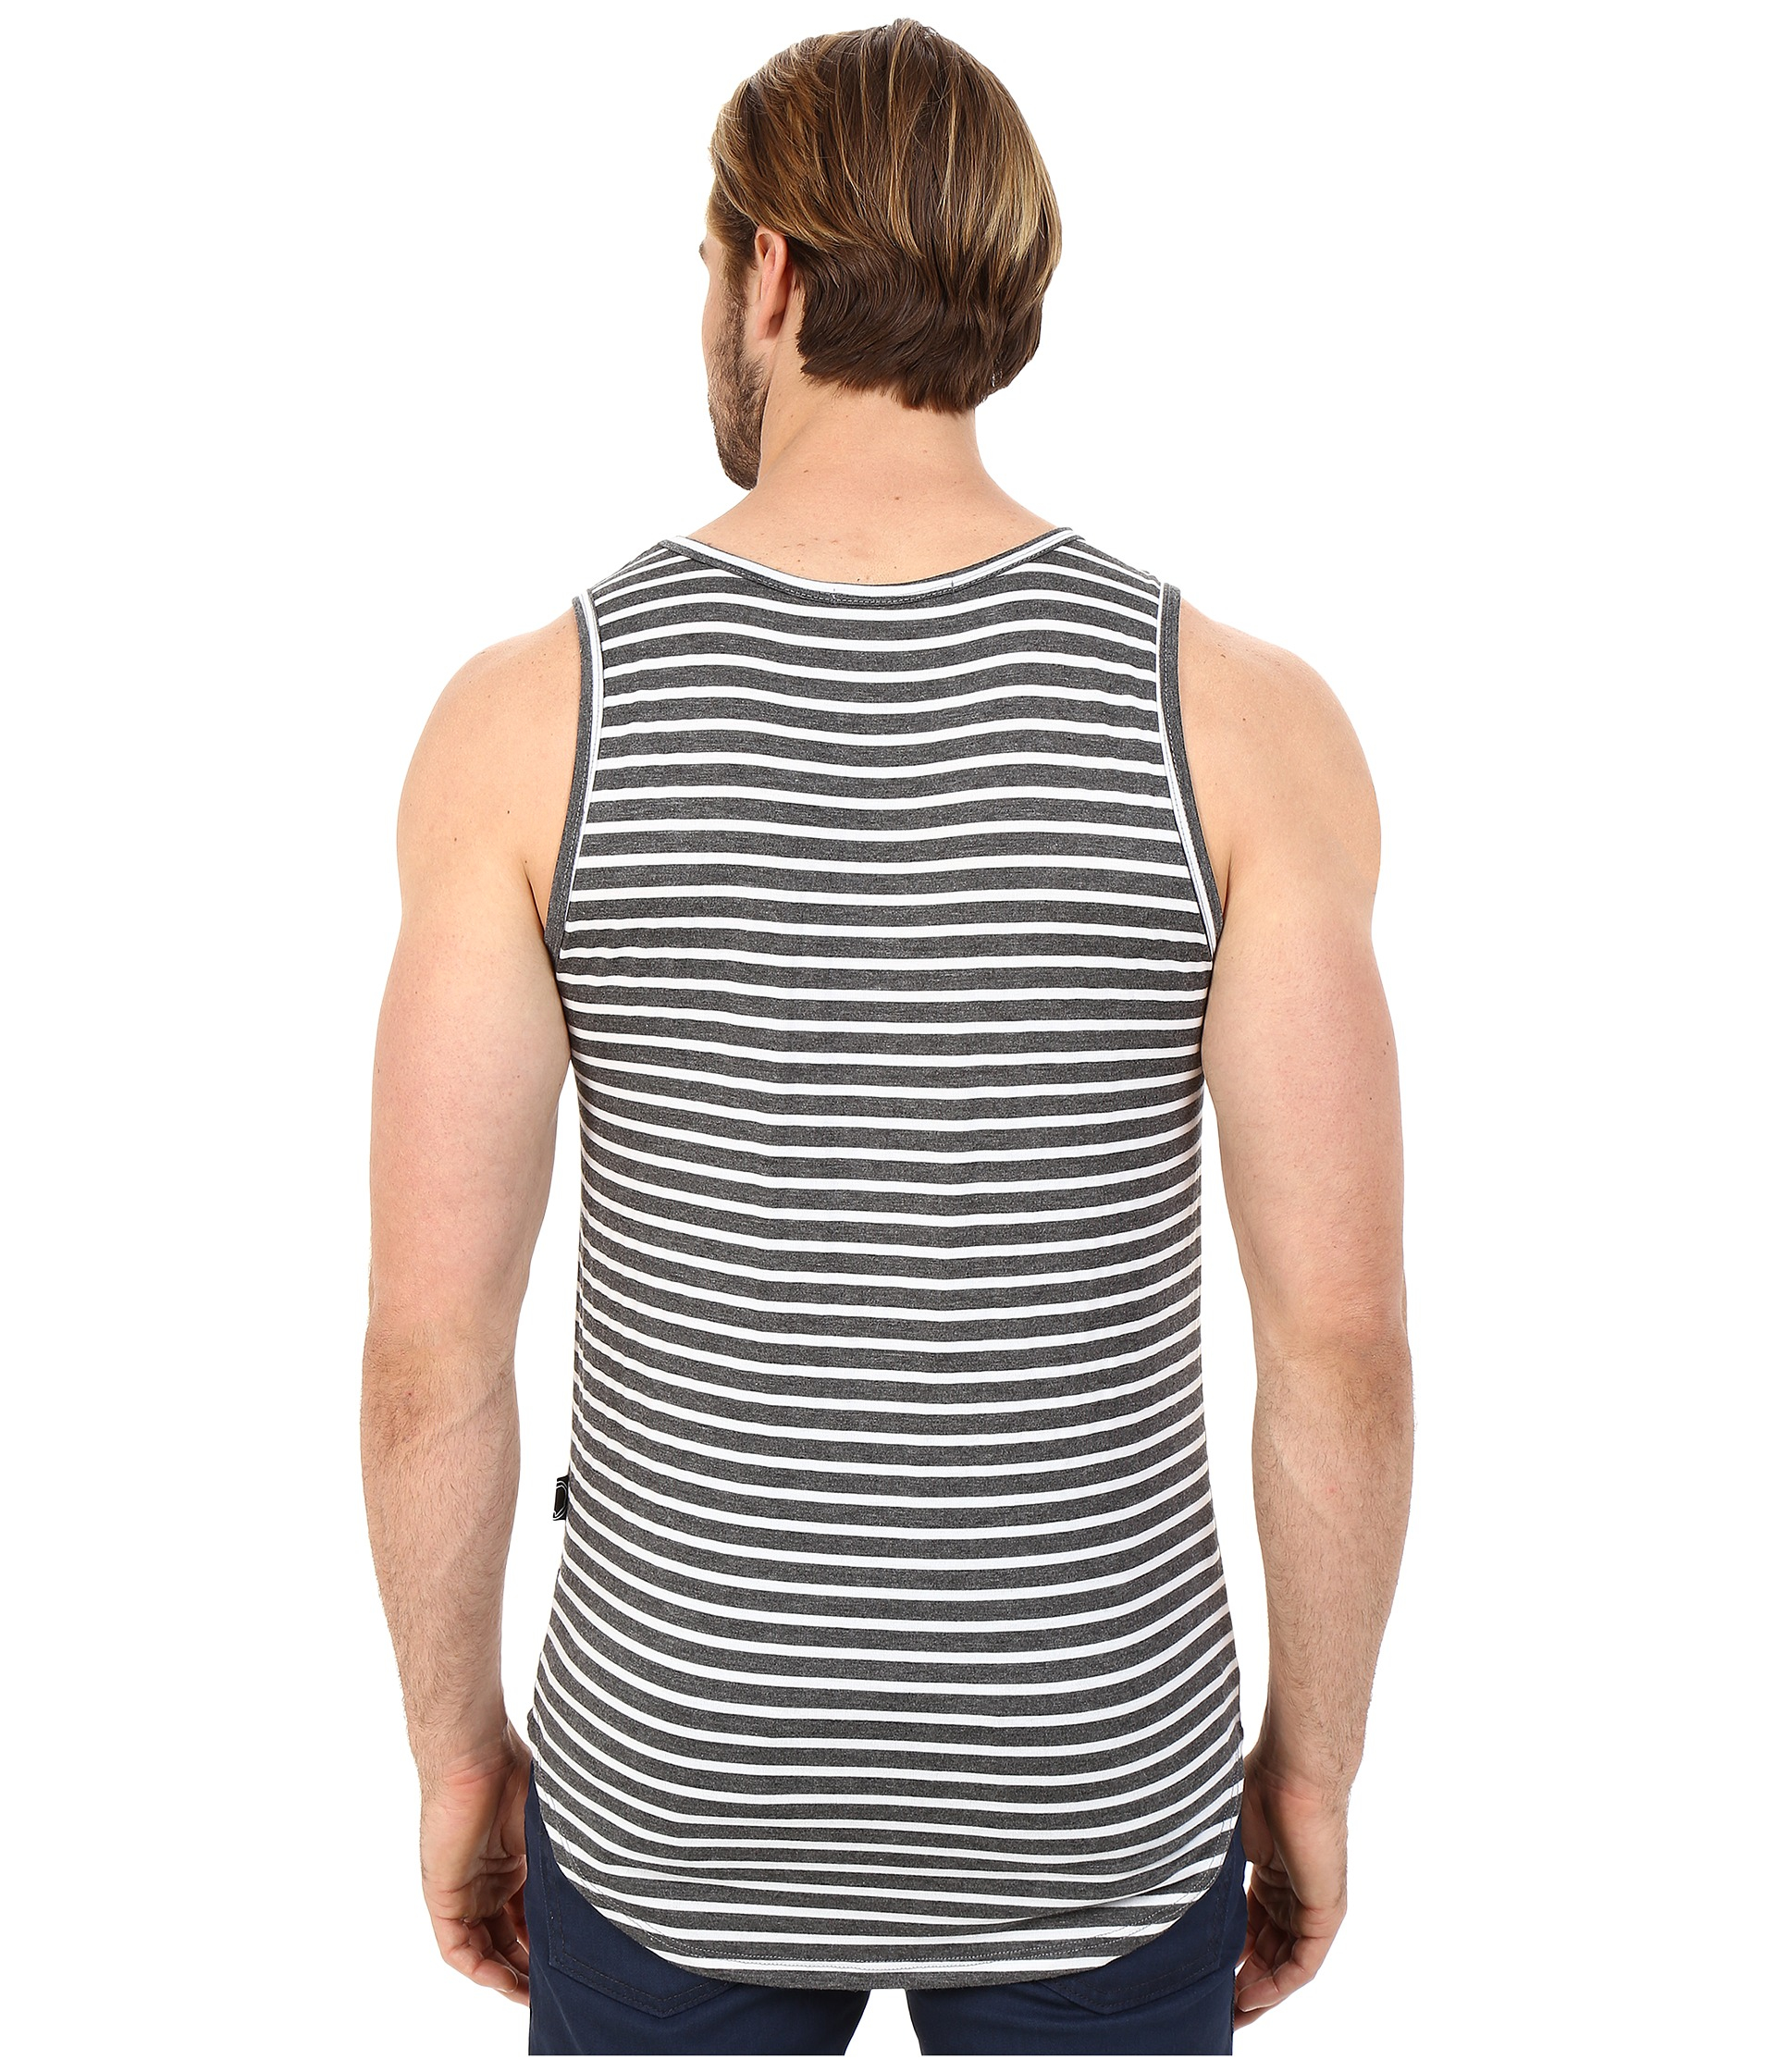 Find great deals on eBay for striped tank top mens. Shop with confidence.